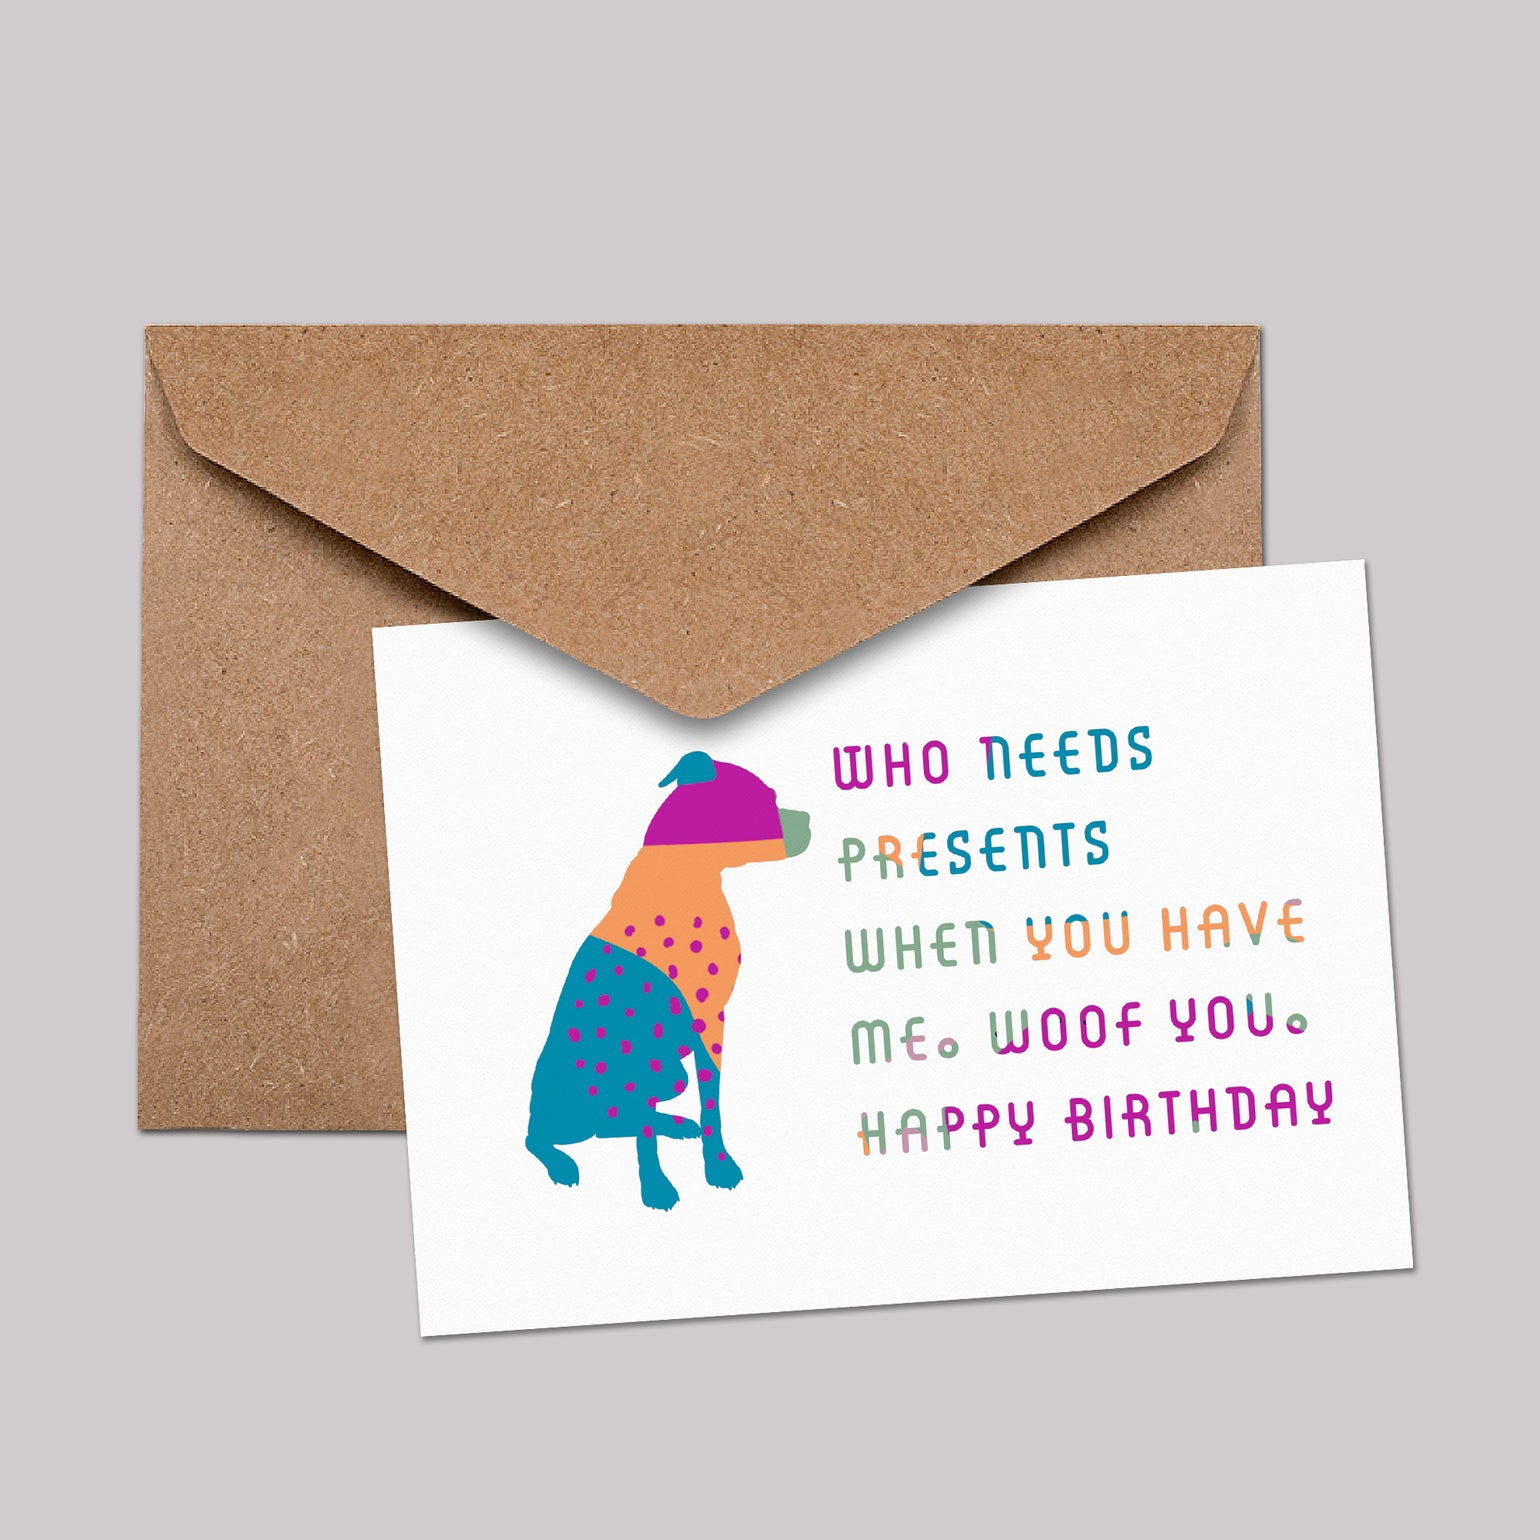 Image of Who needs presents when you have me. Woof you. Happy Birthday